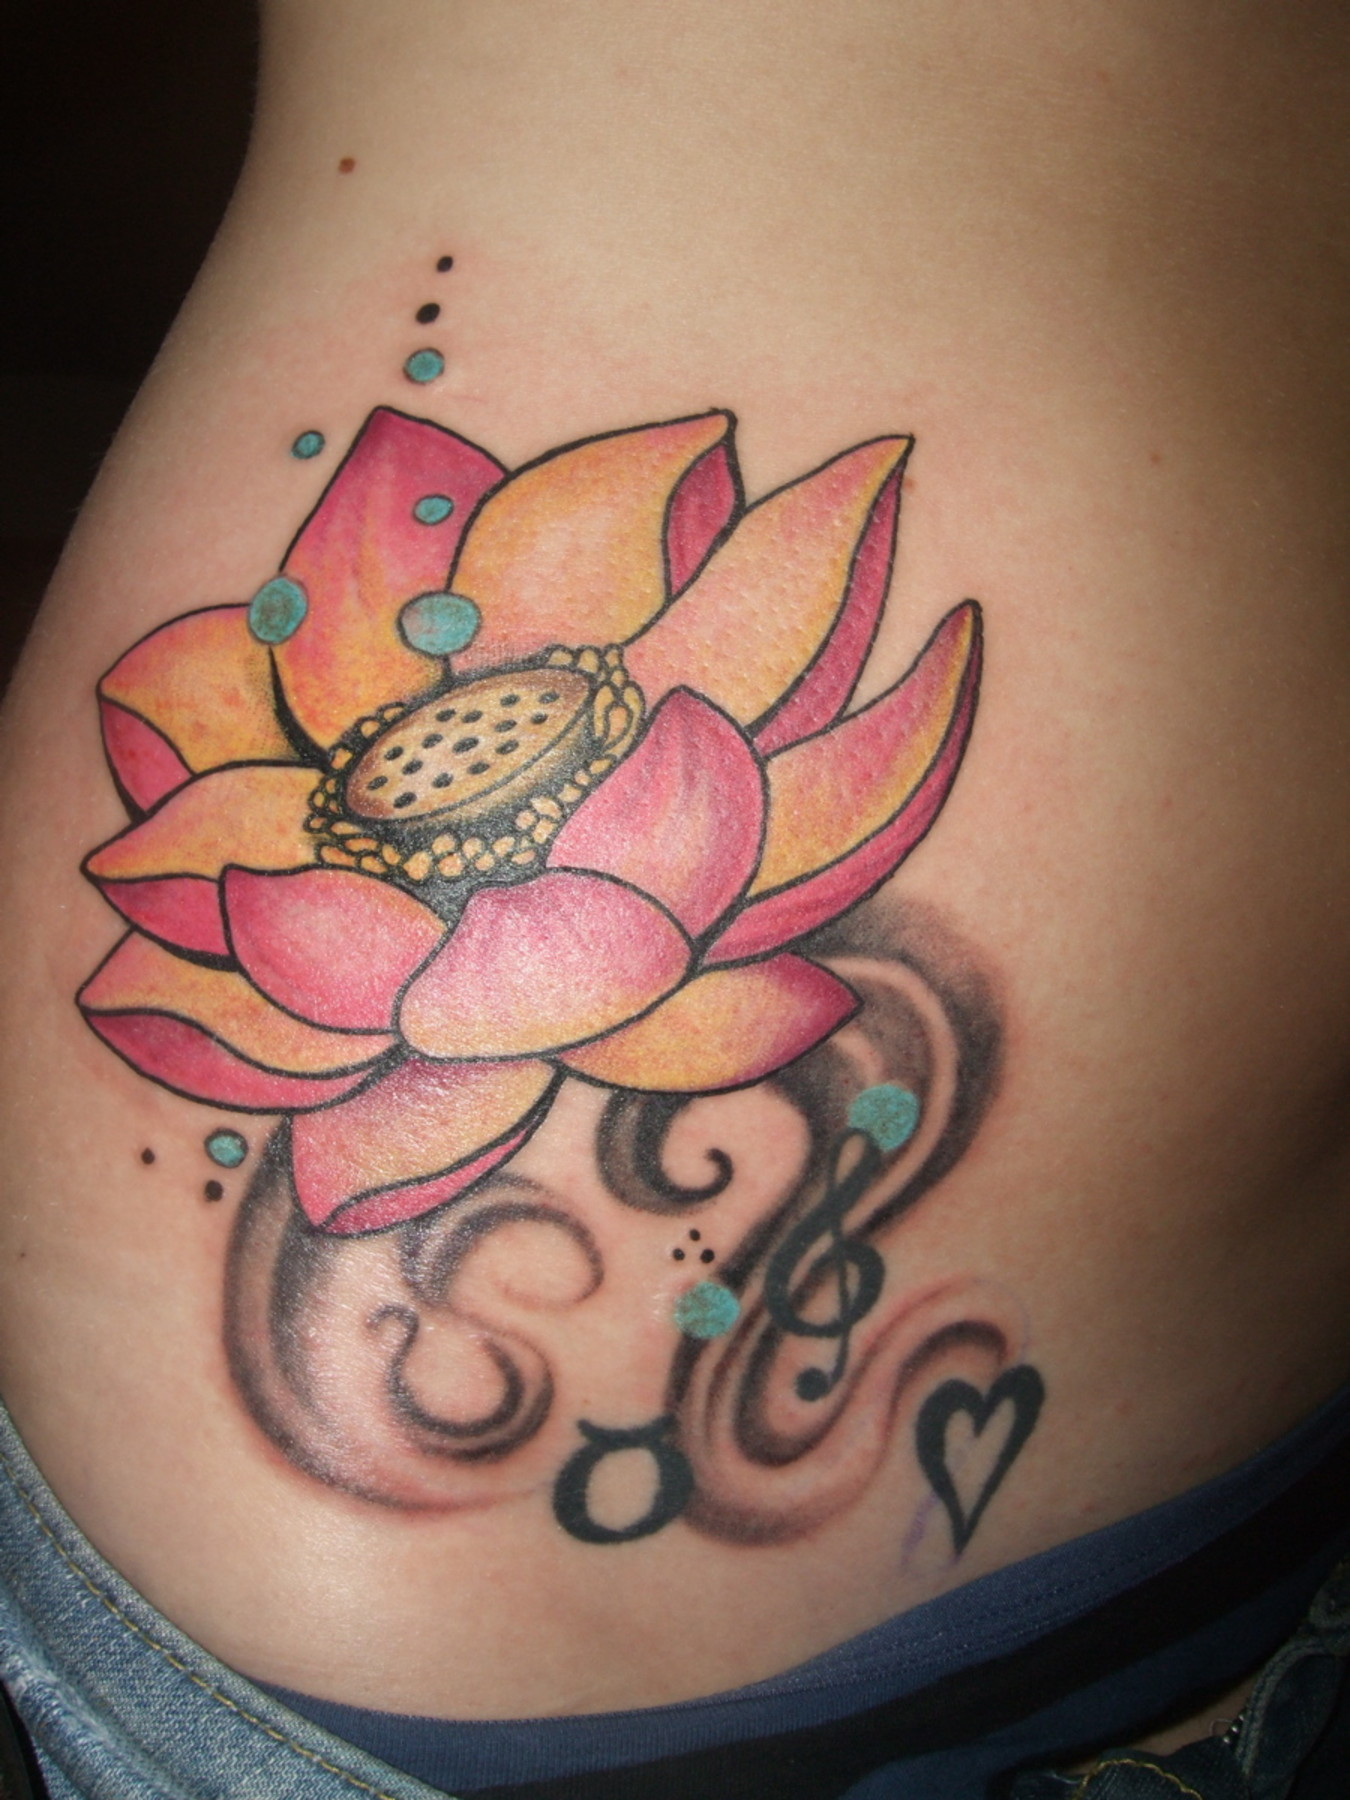 Lotus flower tattoo on side izmirmasajfo